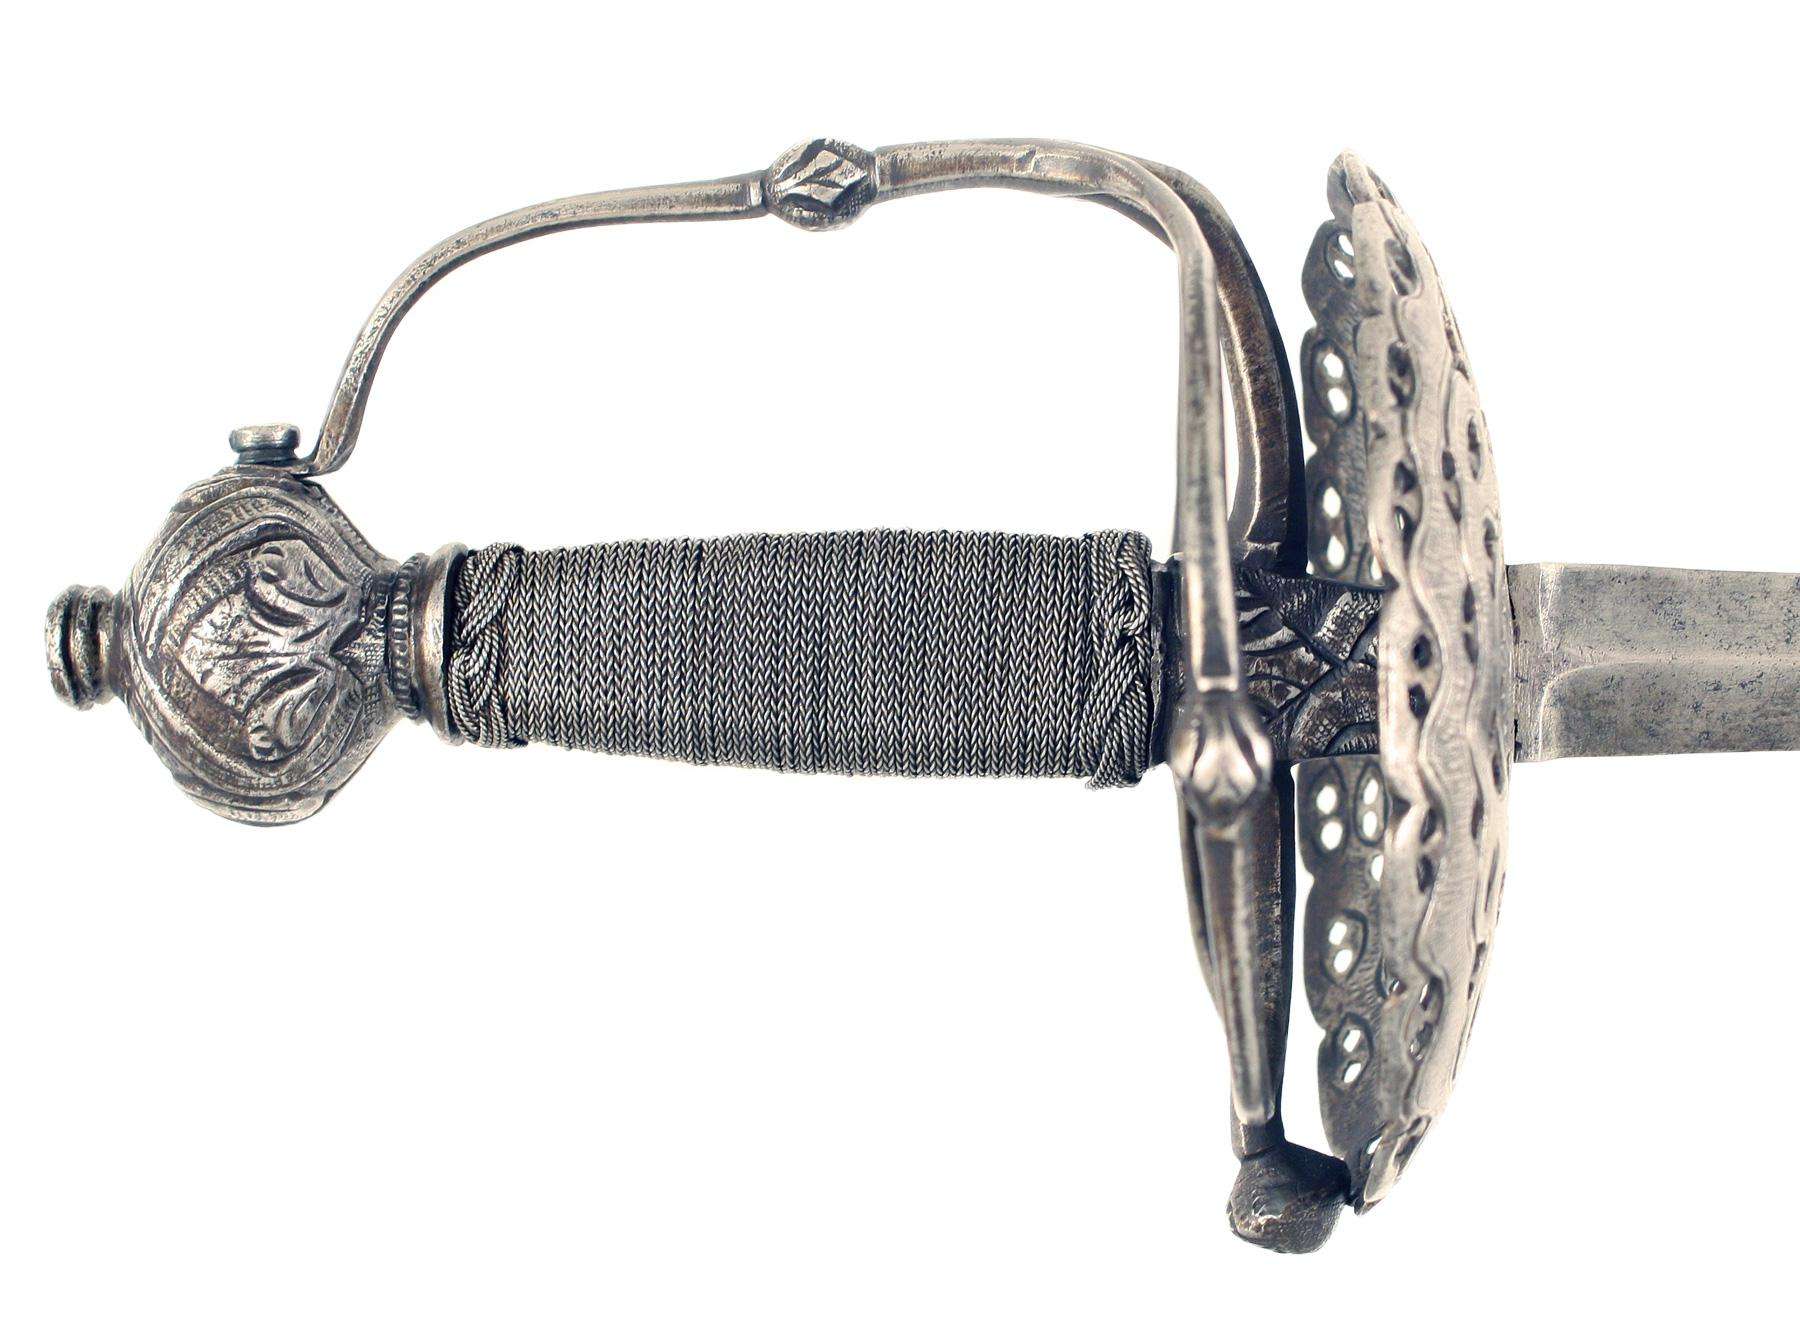 An English Dish Hilt Rapier